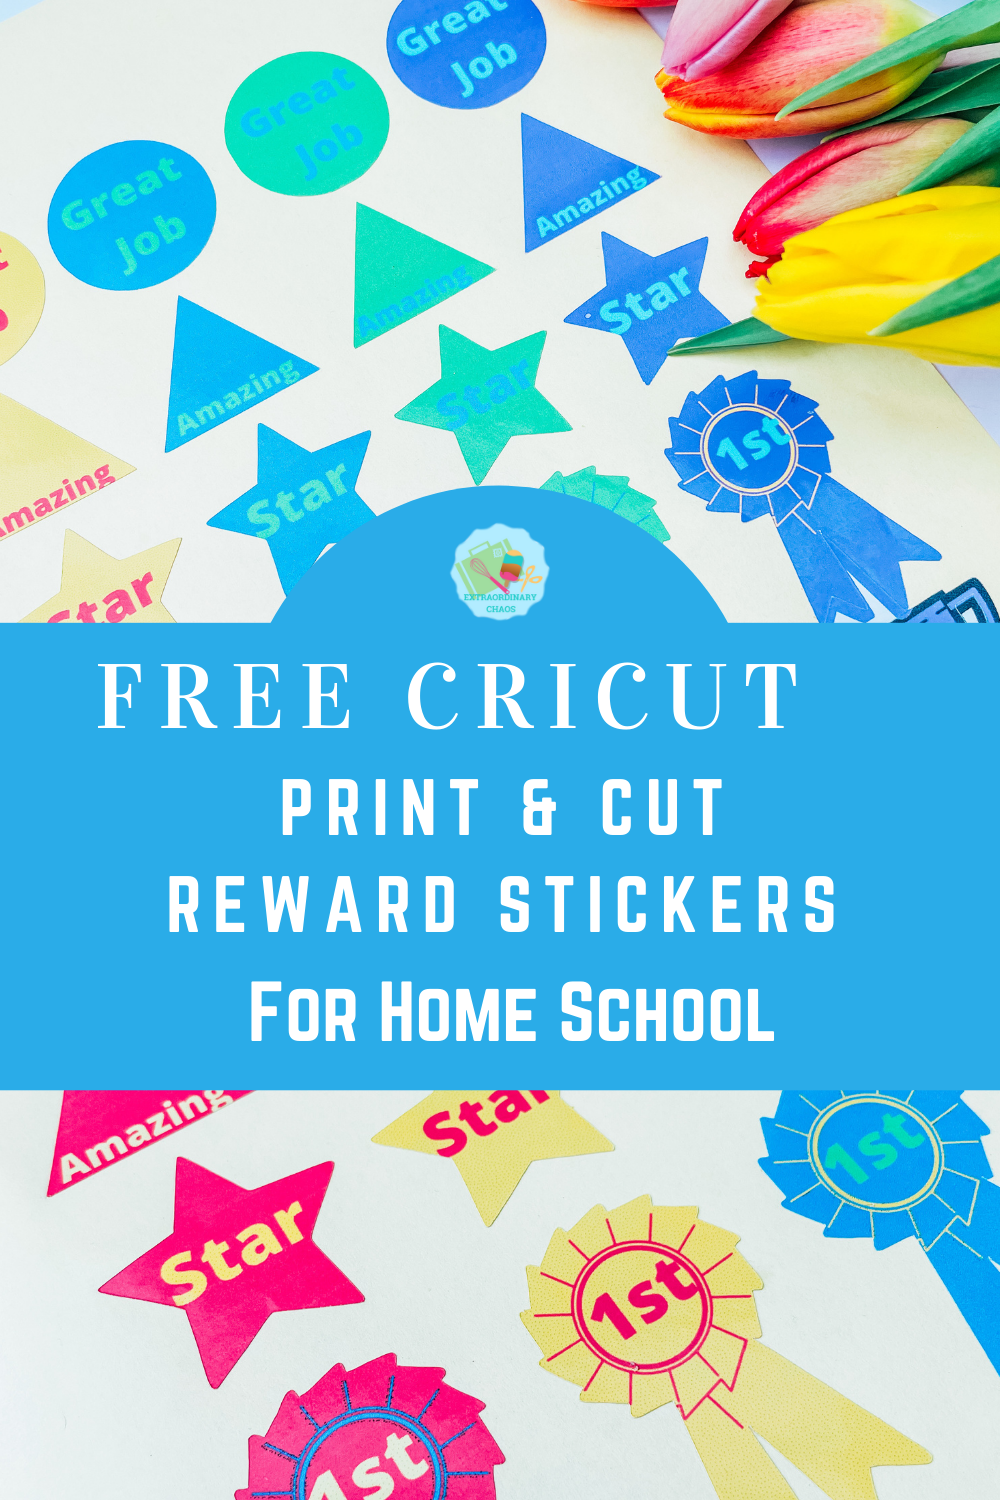 Free Cricut Print and cut reward stickers for home school